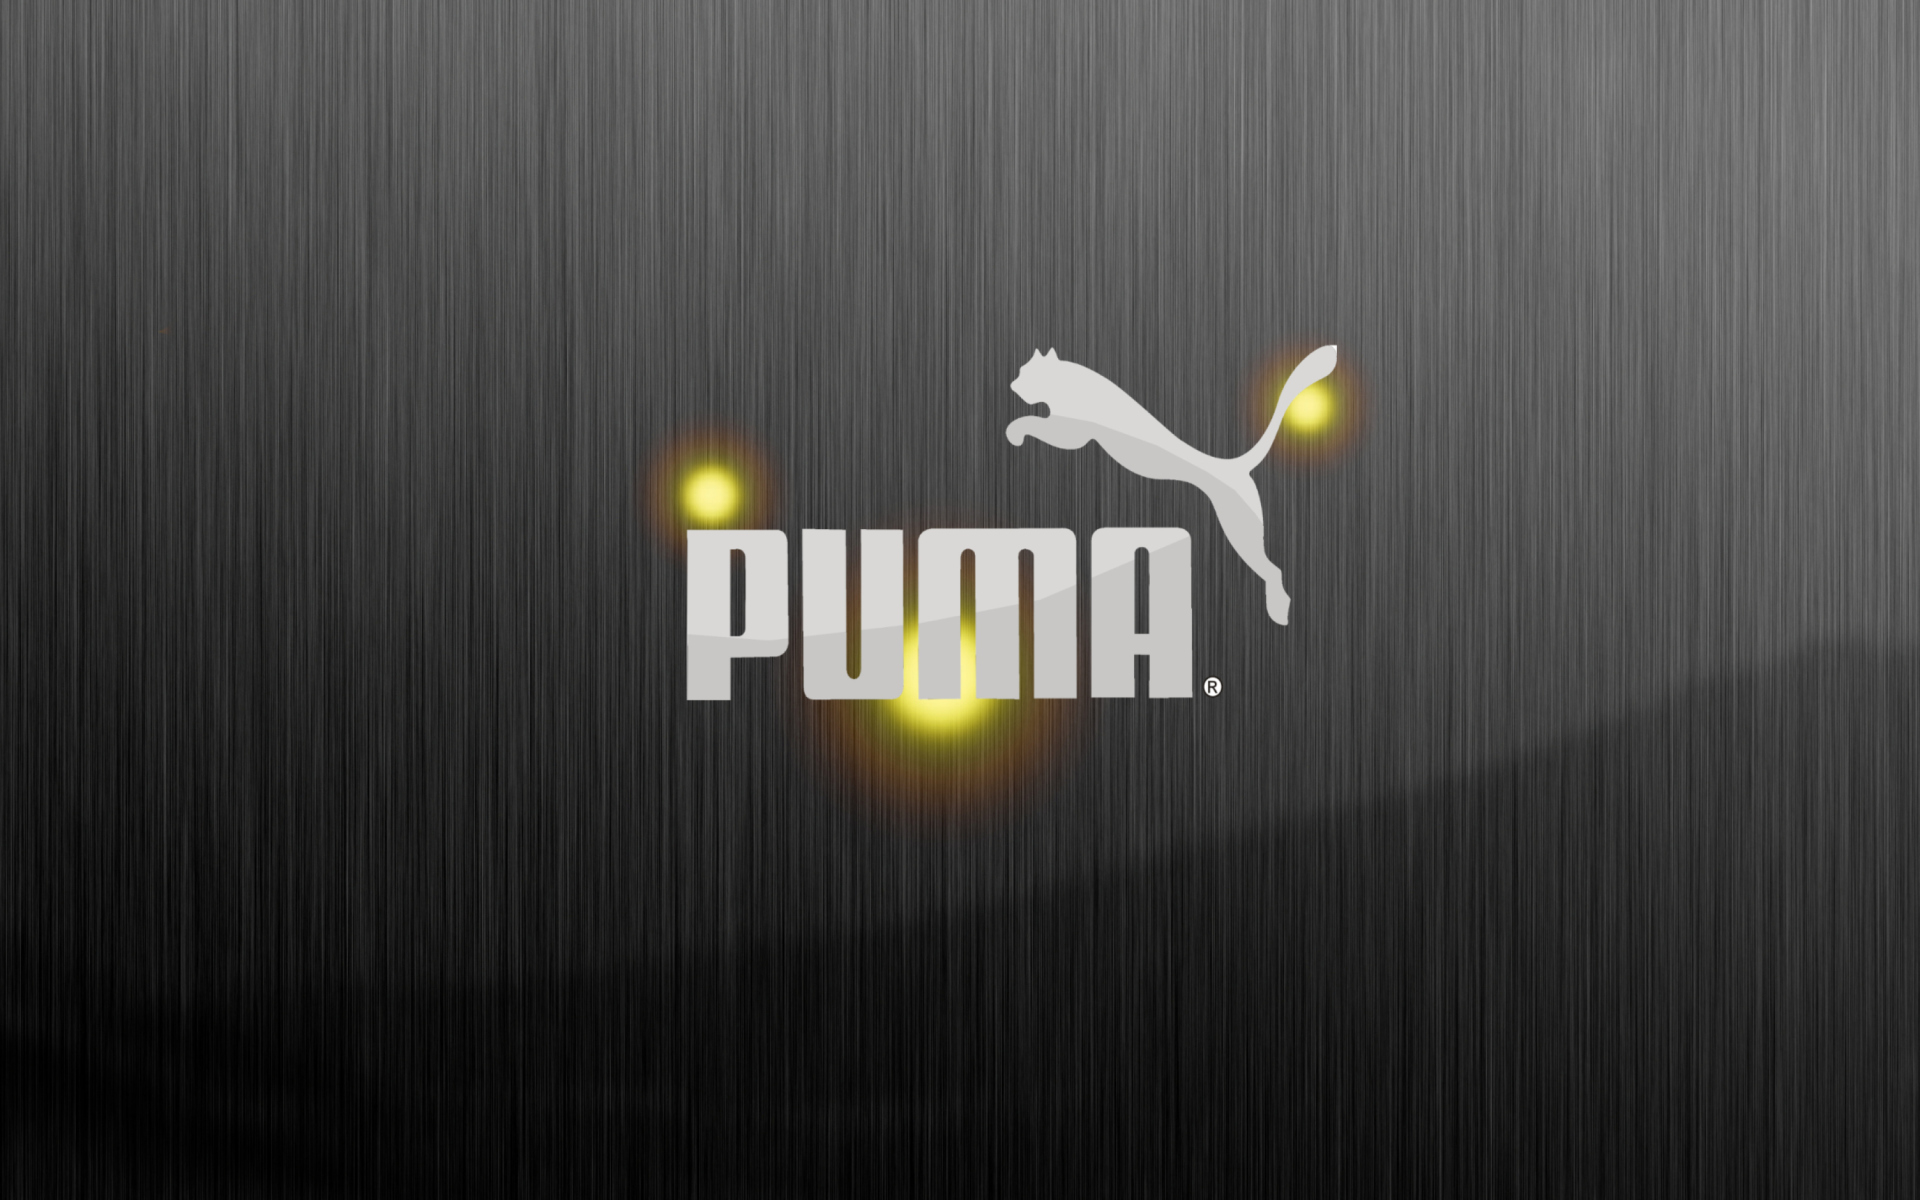 Puma Wallpaper for Widescreen Desktop PC 1920x1080 Full HD